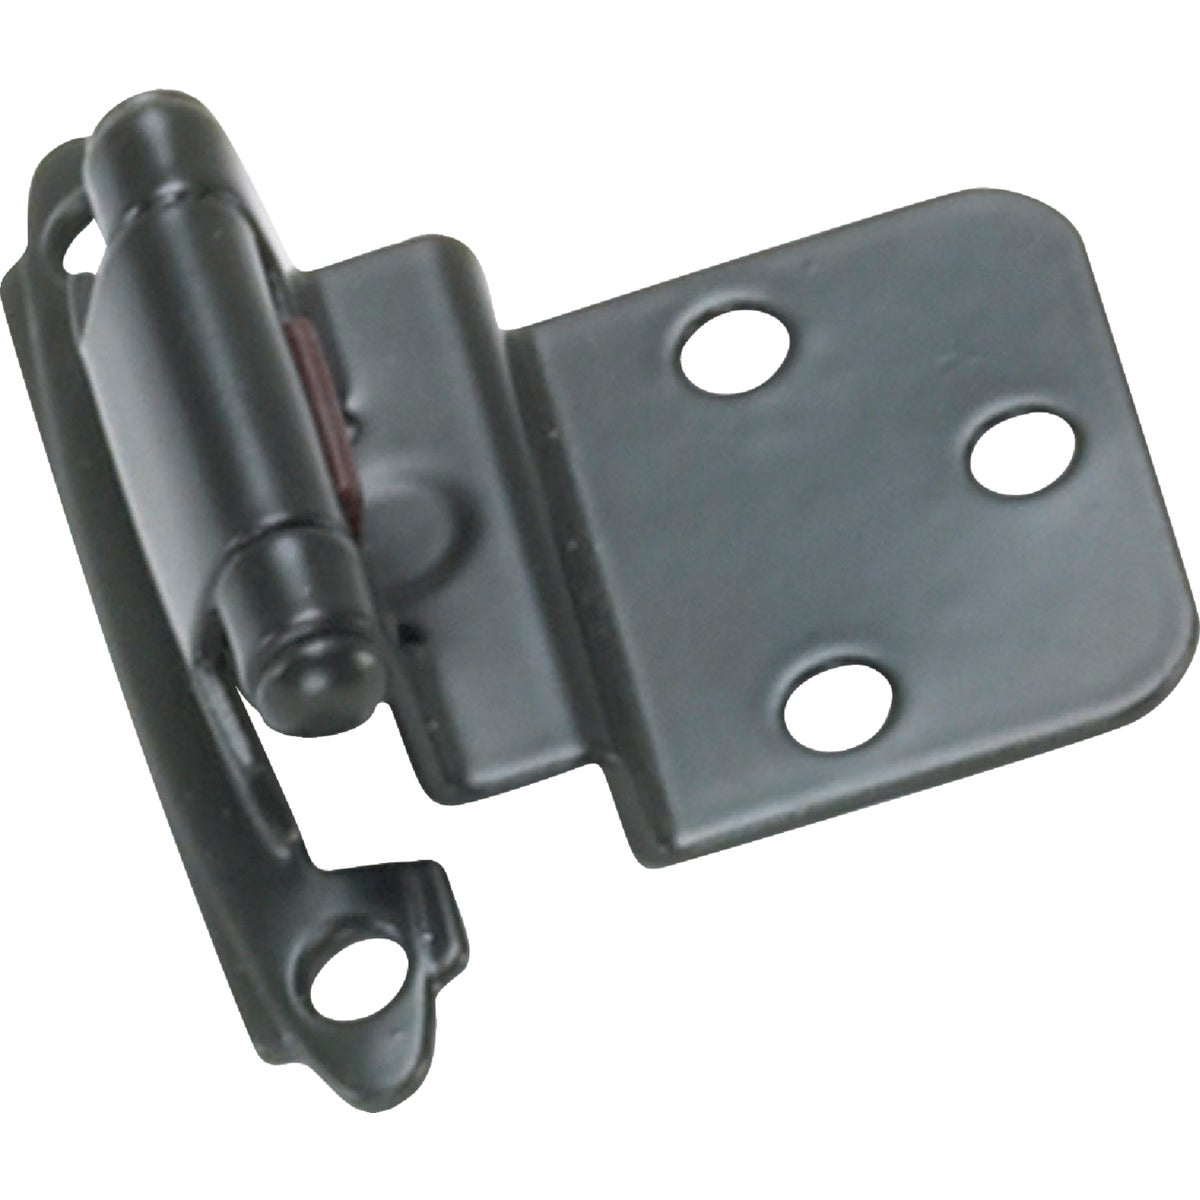 BRZ OIL RUBBED HINGE - 28666 by Laurey Co